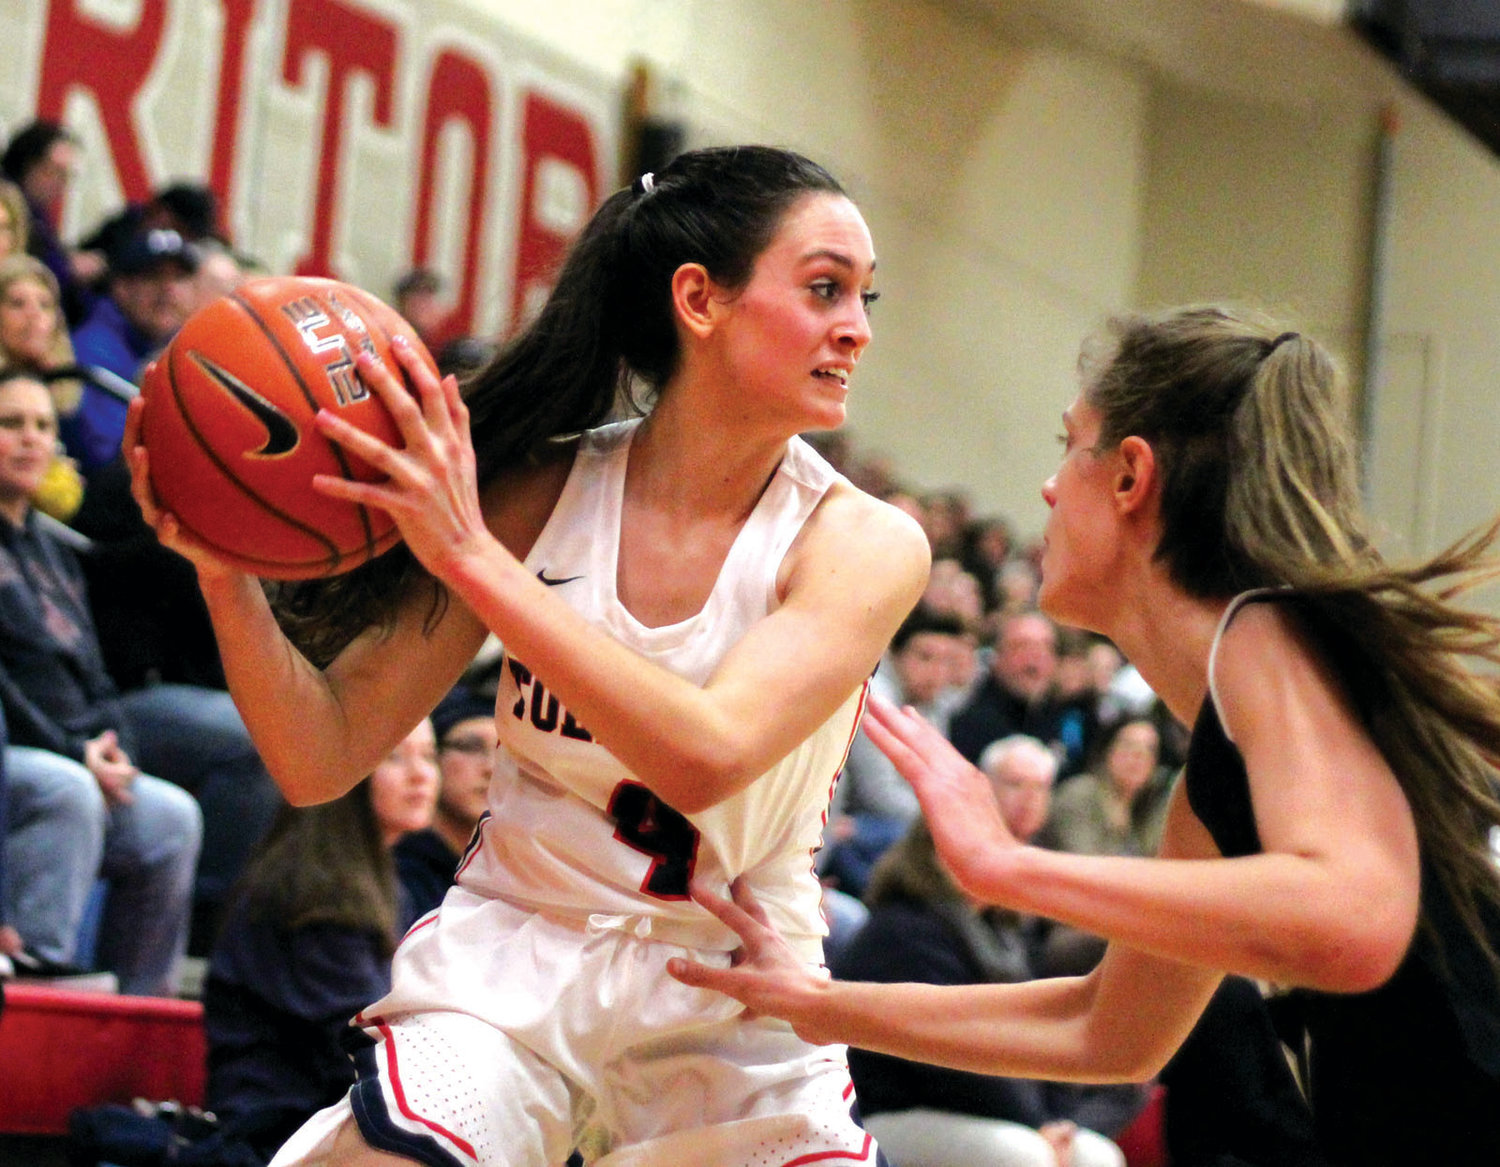 CITY RIVALS: Toll Gate's Natalie Aloisio works past a Pilgrim defender on Monday evening at Toll Gate High School.  The Lady Titans pulled off the upset in the 41-28 win, handing their city rival Patriots their first league loss of the season.